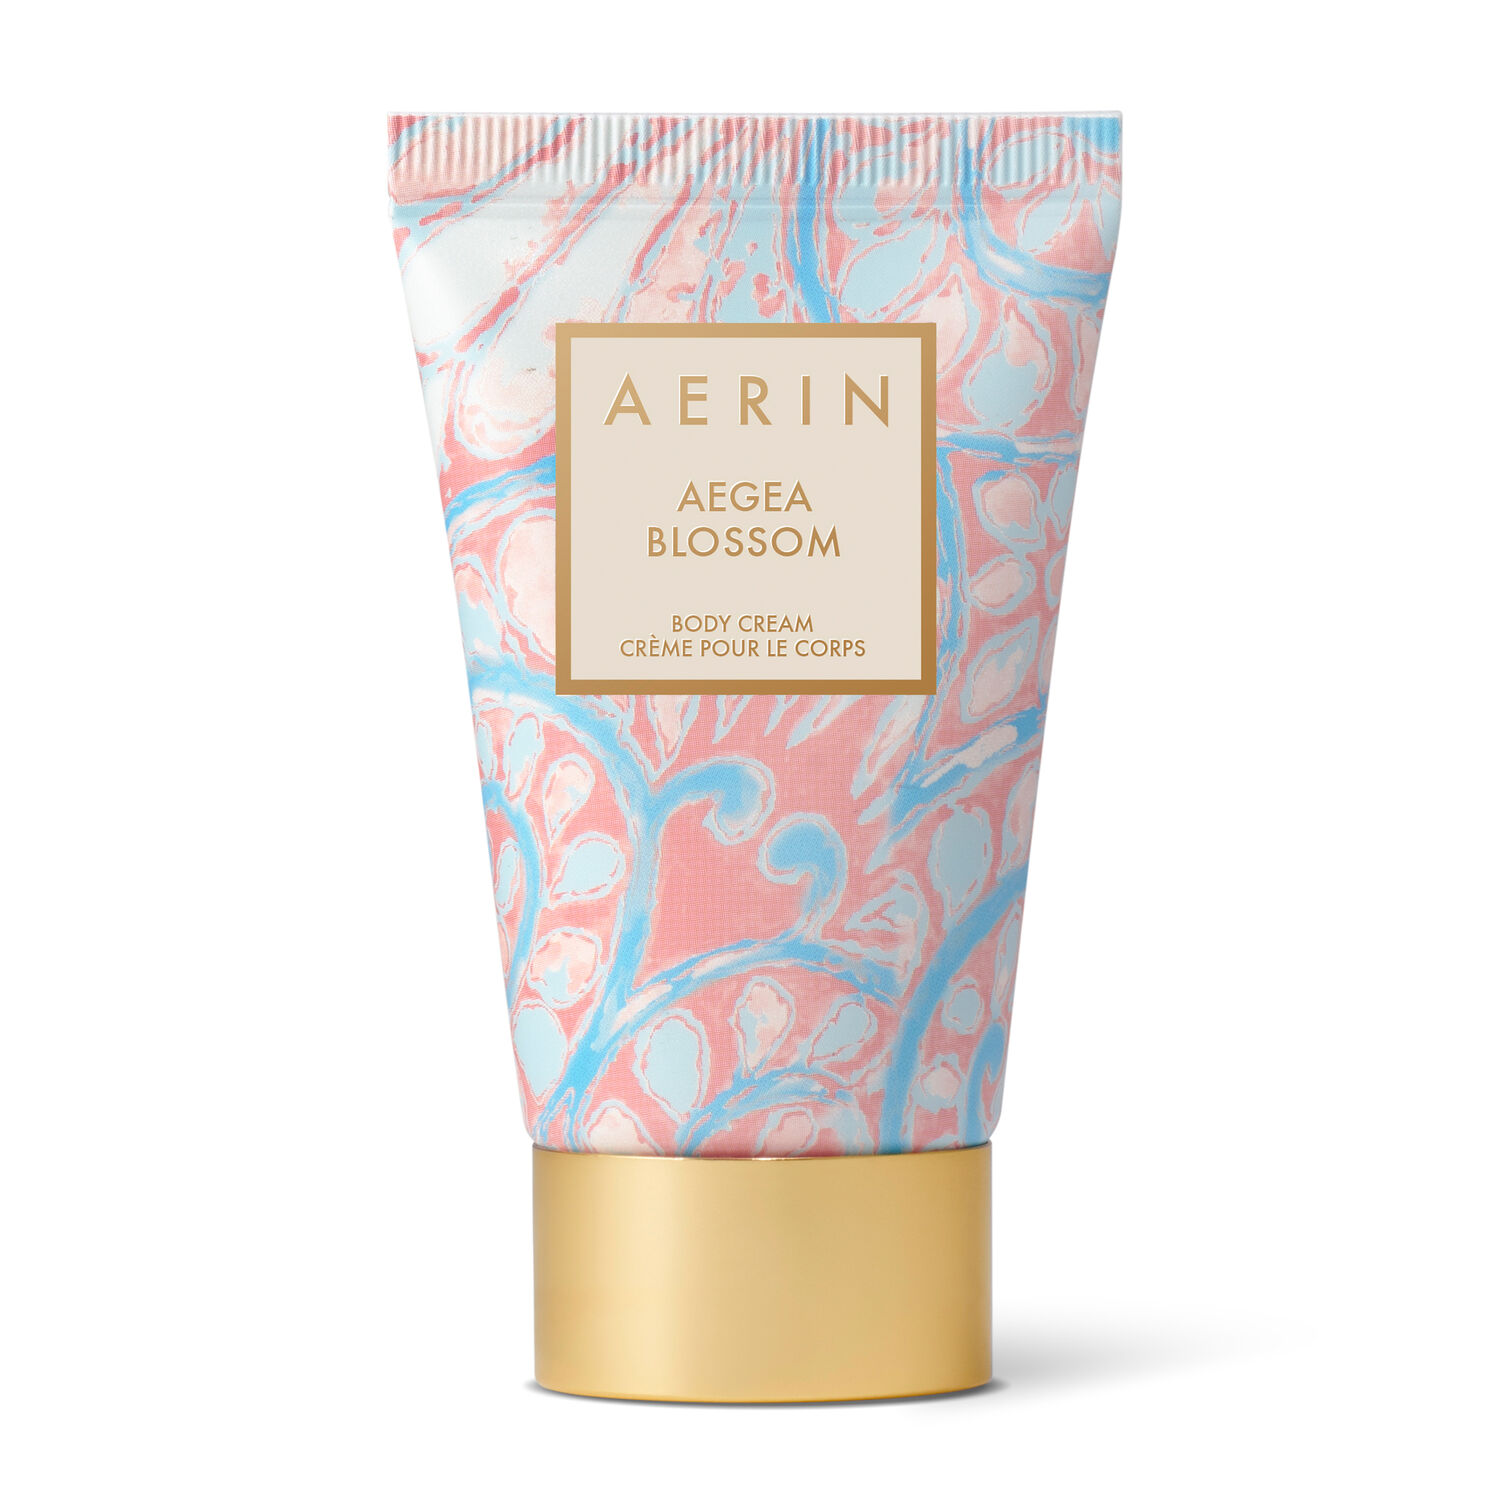 Aegea Blossom Body Cream Deluxe Sample